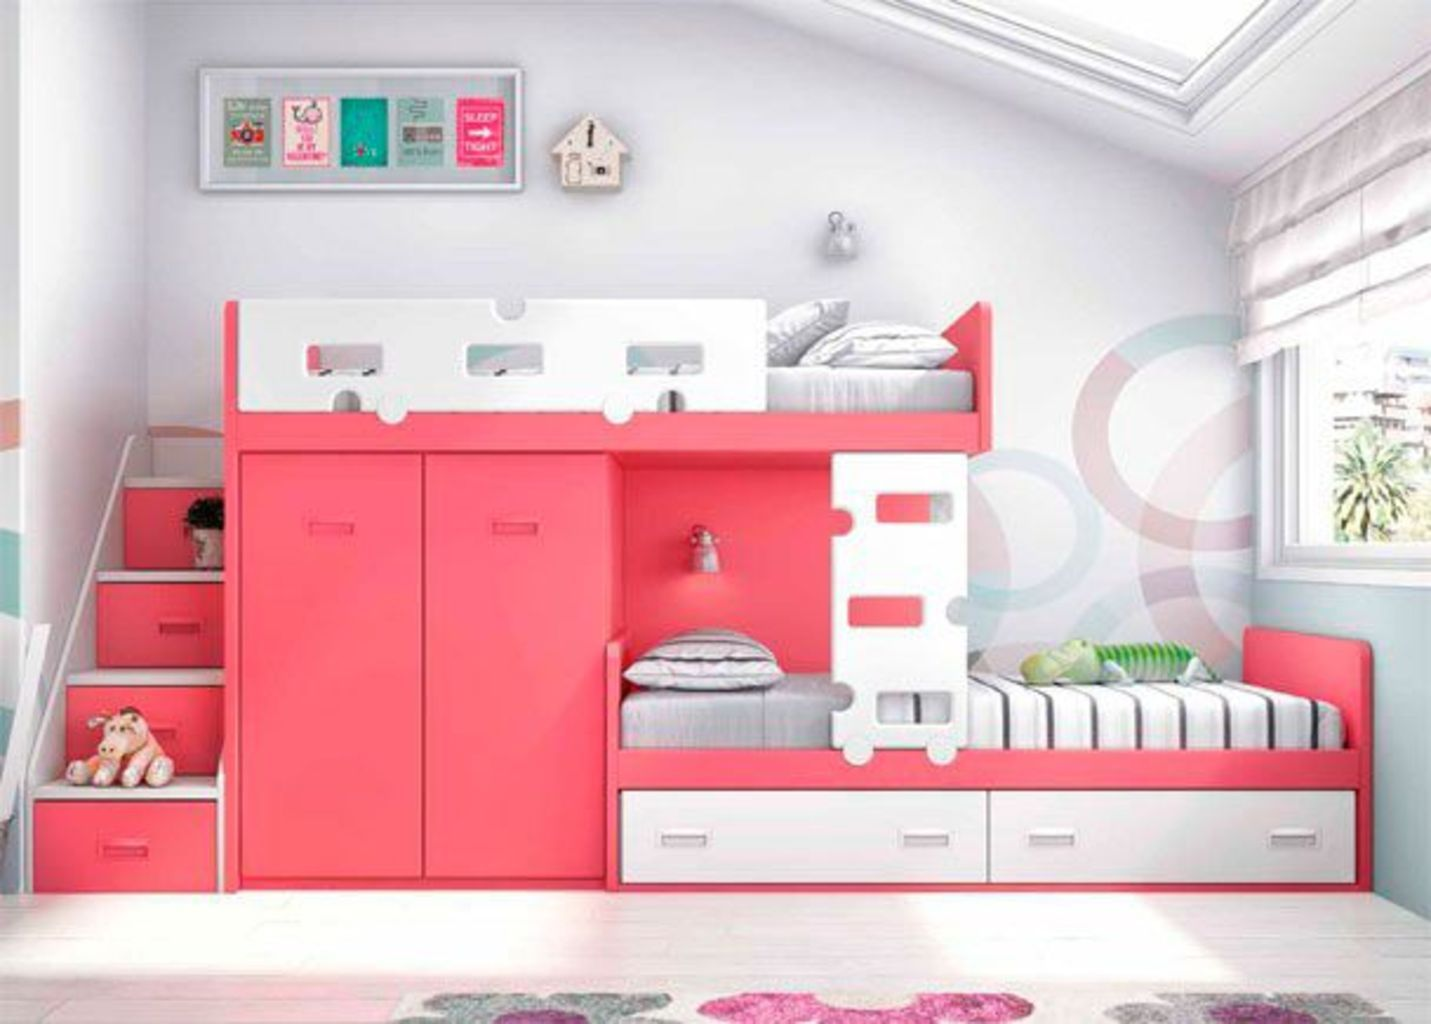 Amazing Bunk Bed Ideas For a Dream Girls and Sisters Room You Wish You Had As A Kid Part 14 images